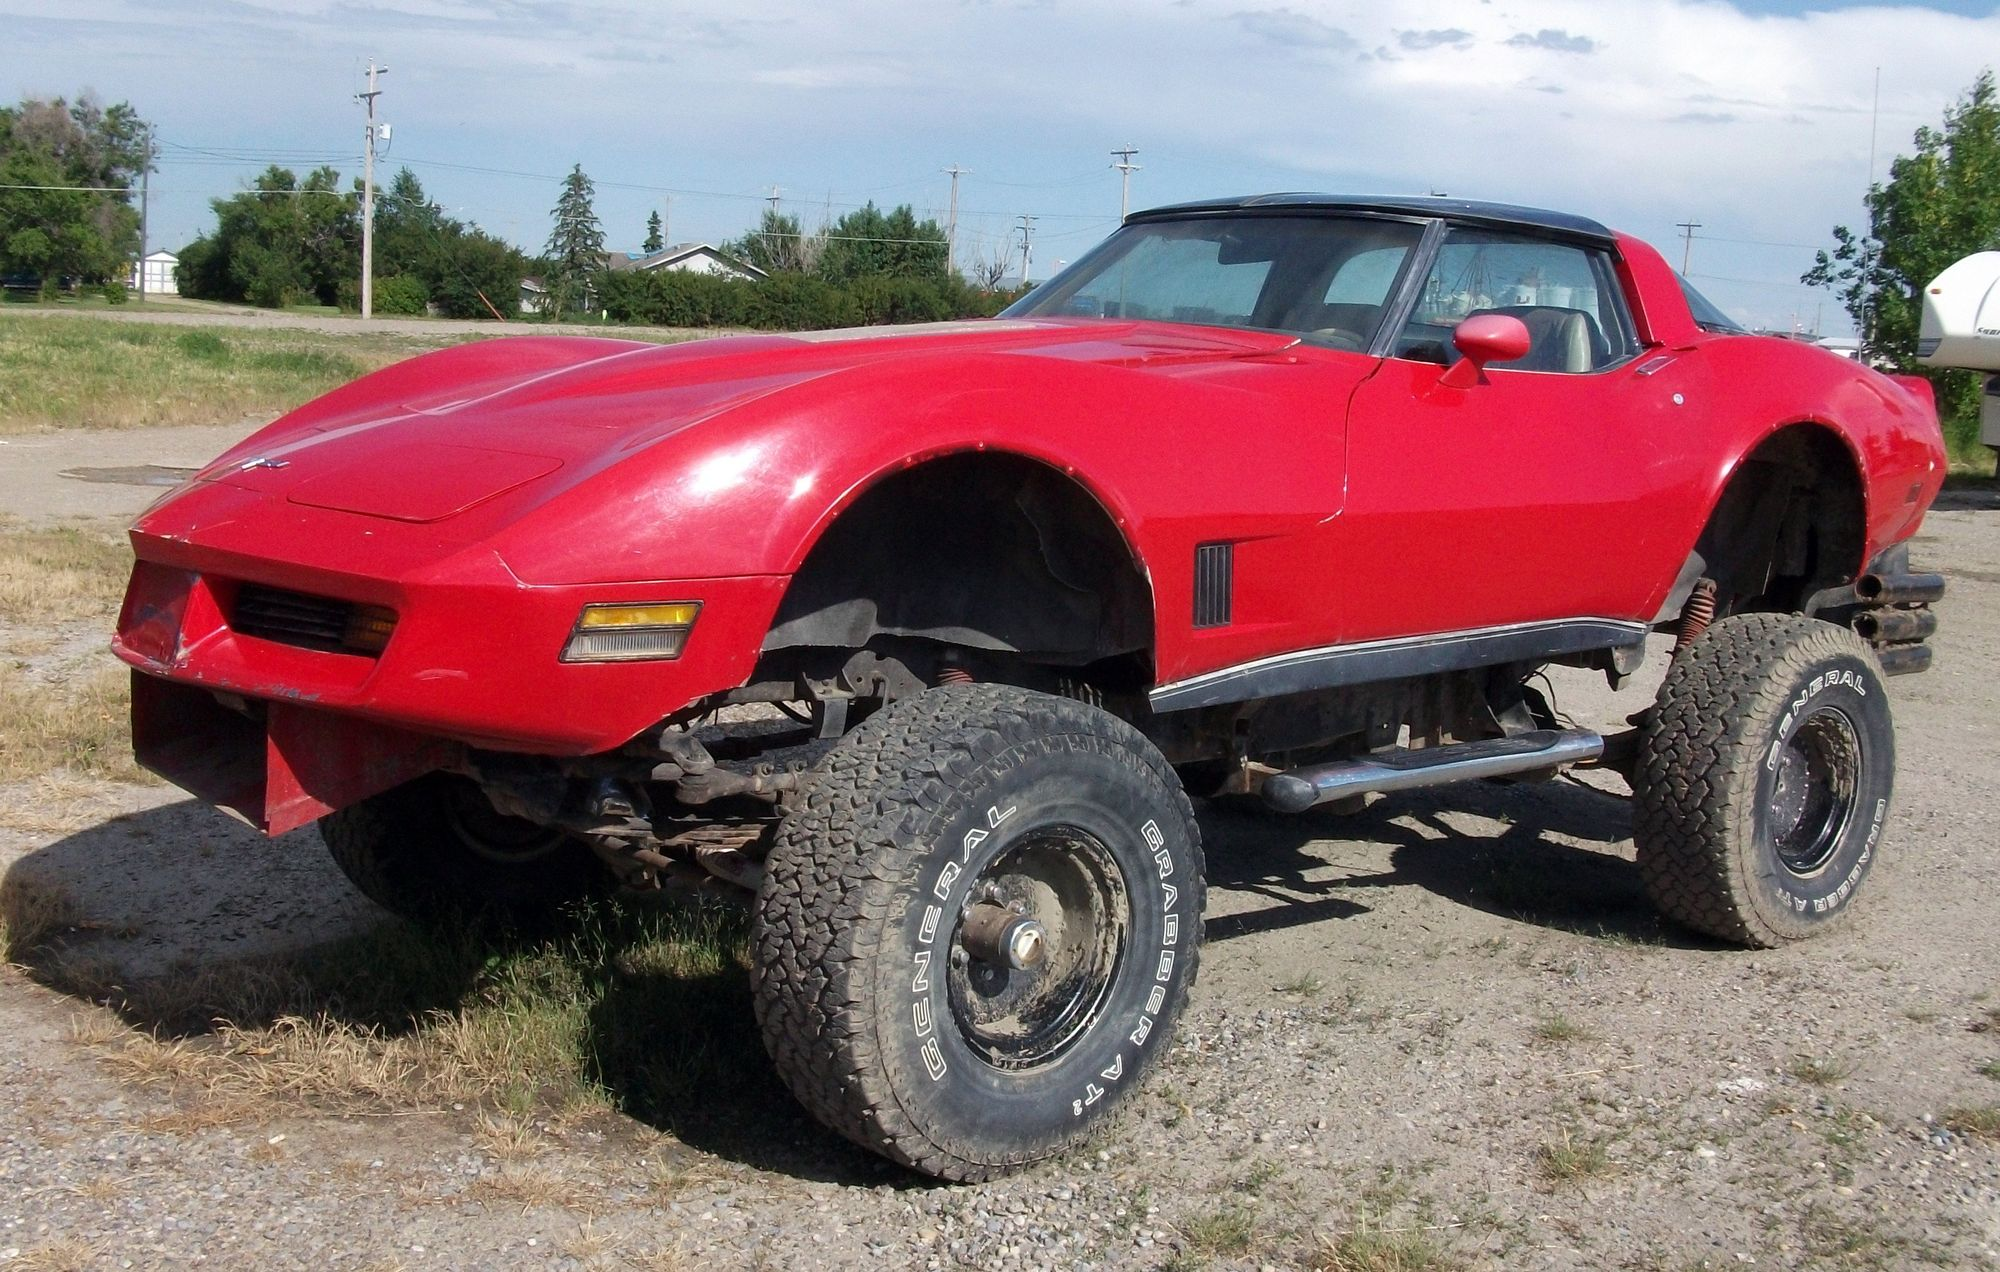 [GALLERY] Corvettes Destined for Greater Heights (33 Corvette photos)